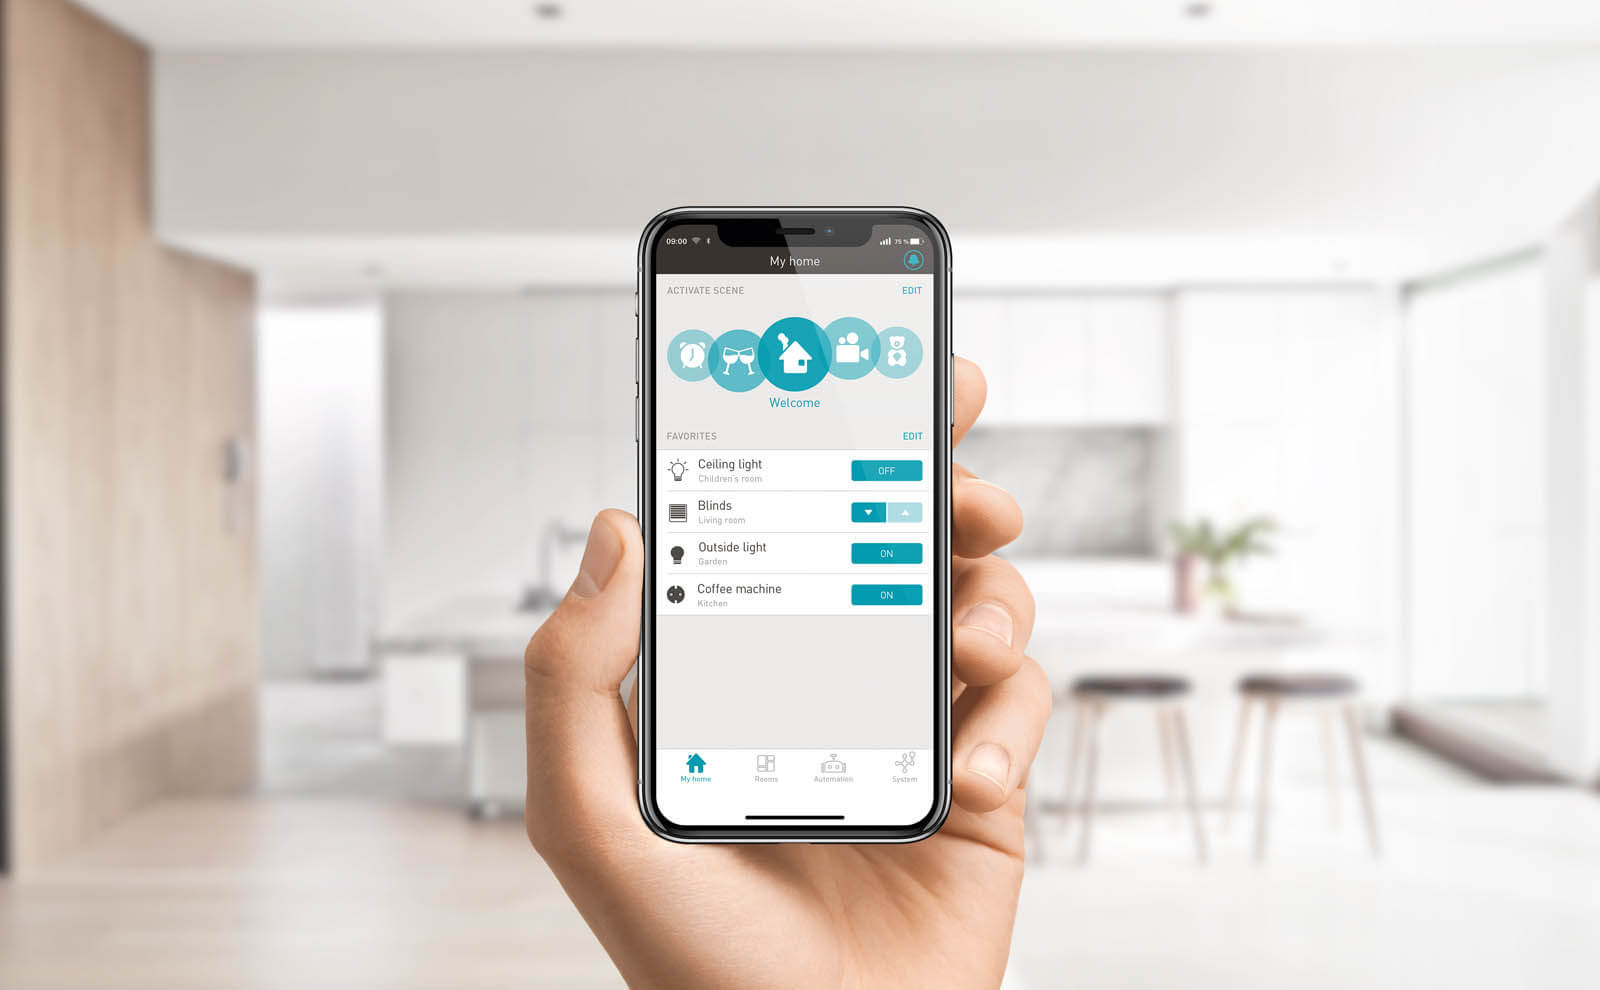 eNet SMART HOME App mobile